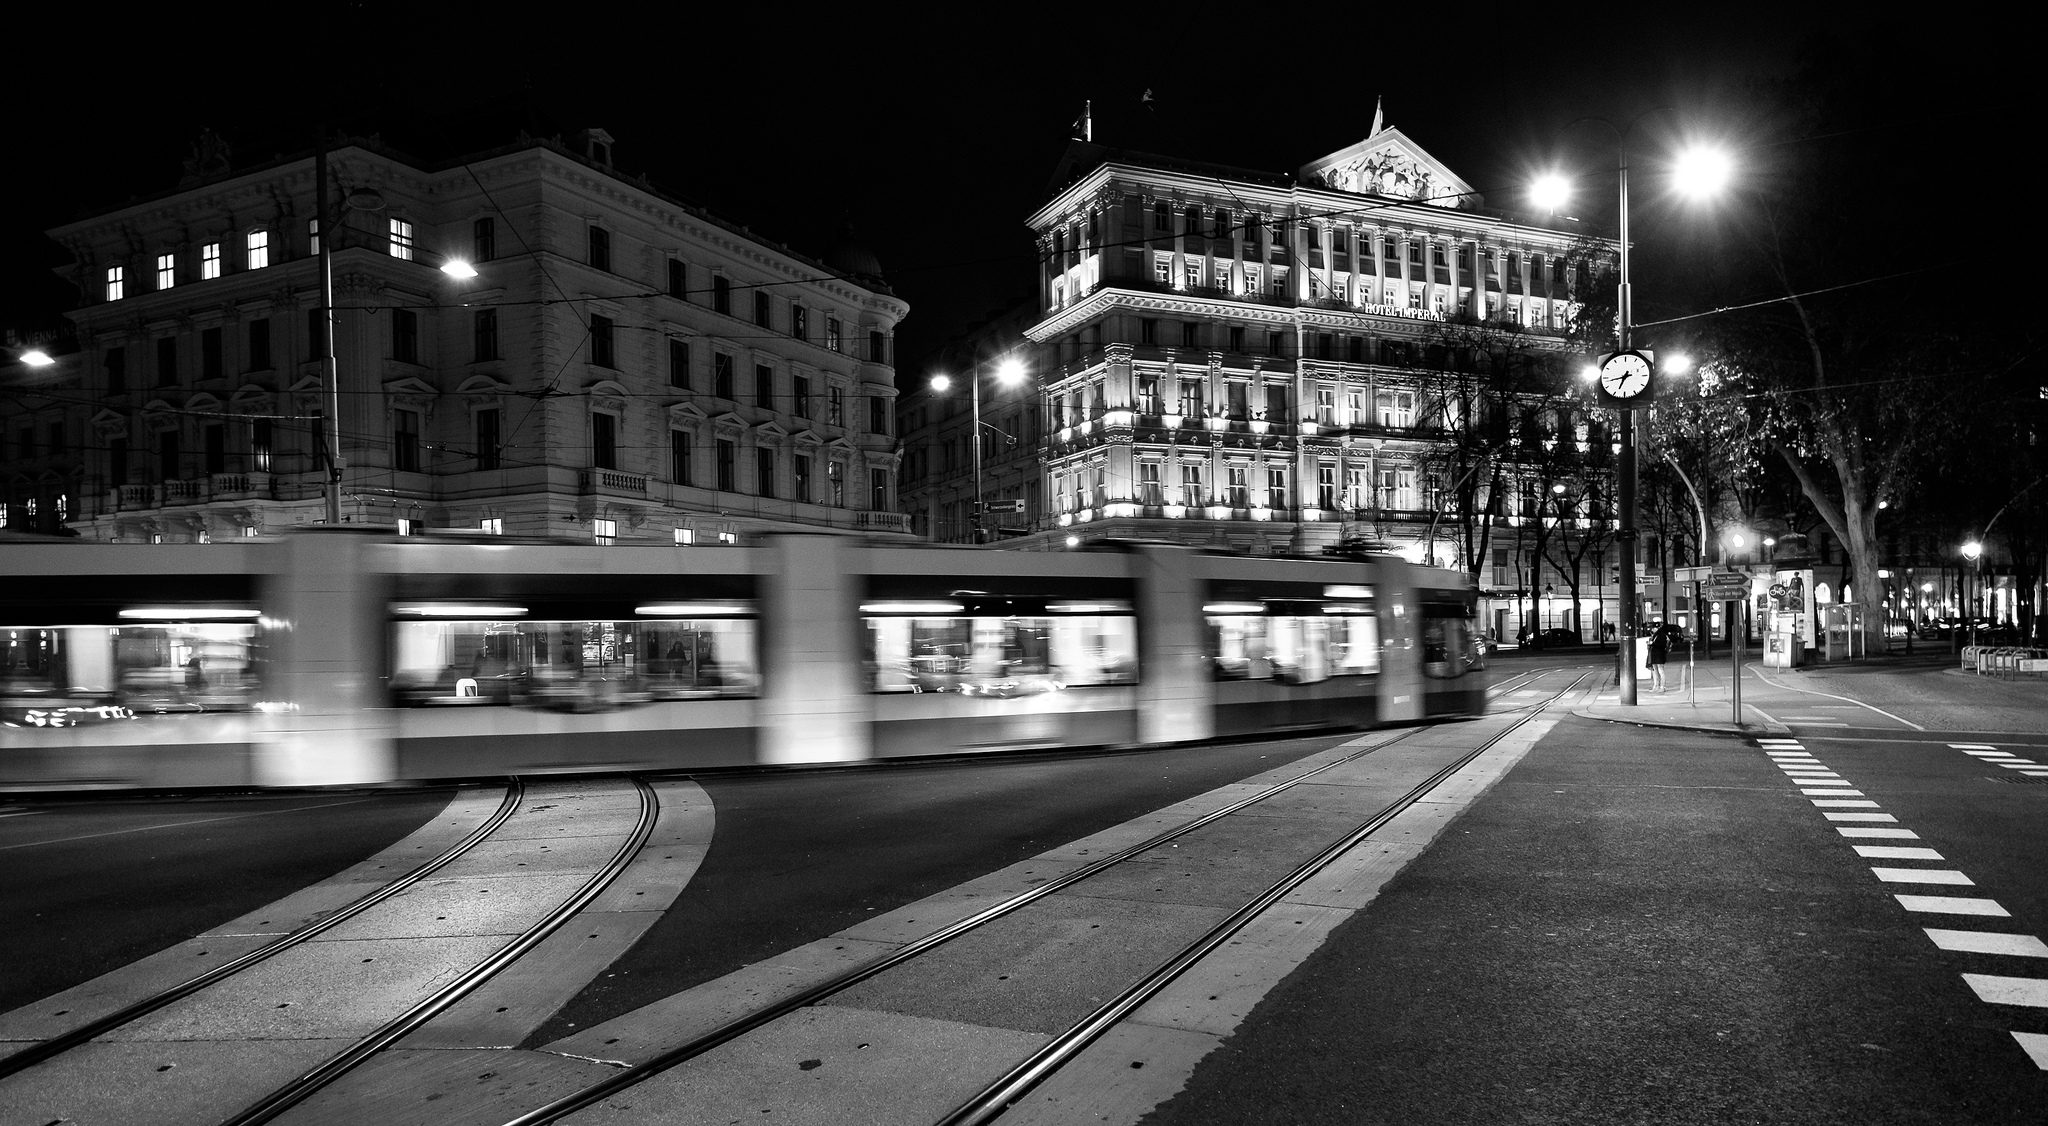 Traffic Viena by Roman Pfeiffer - Flickr